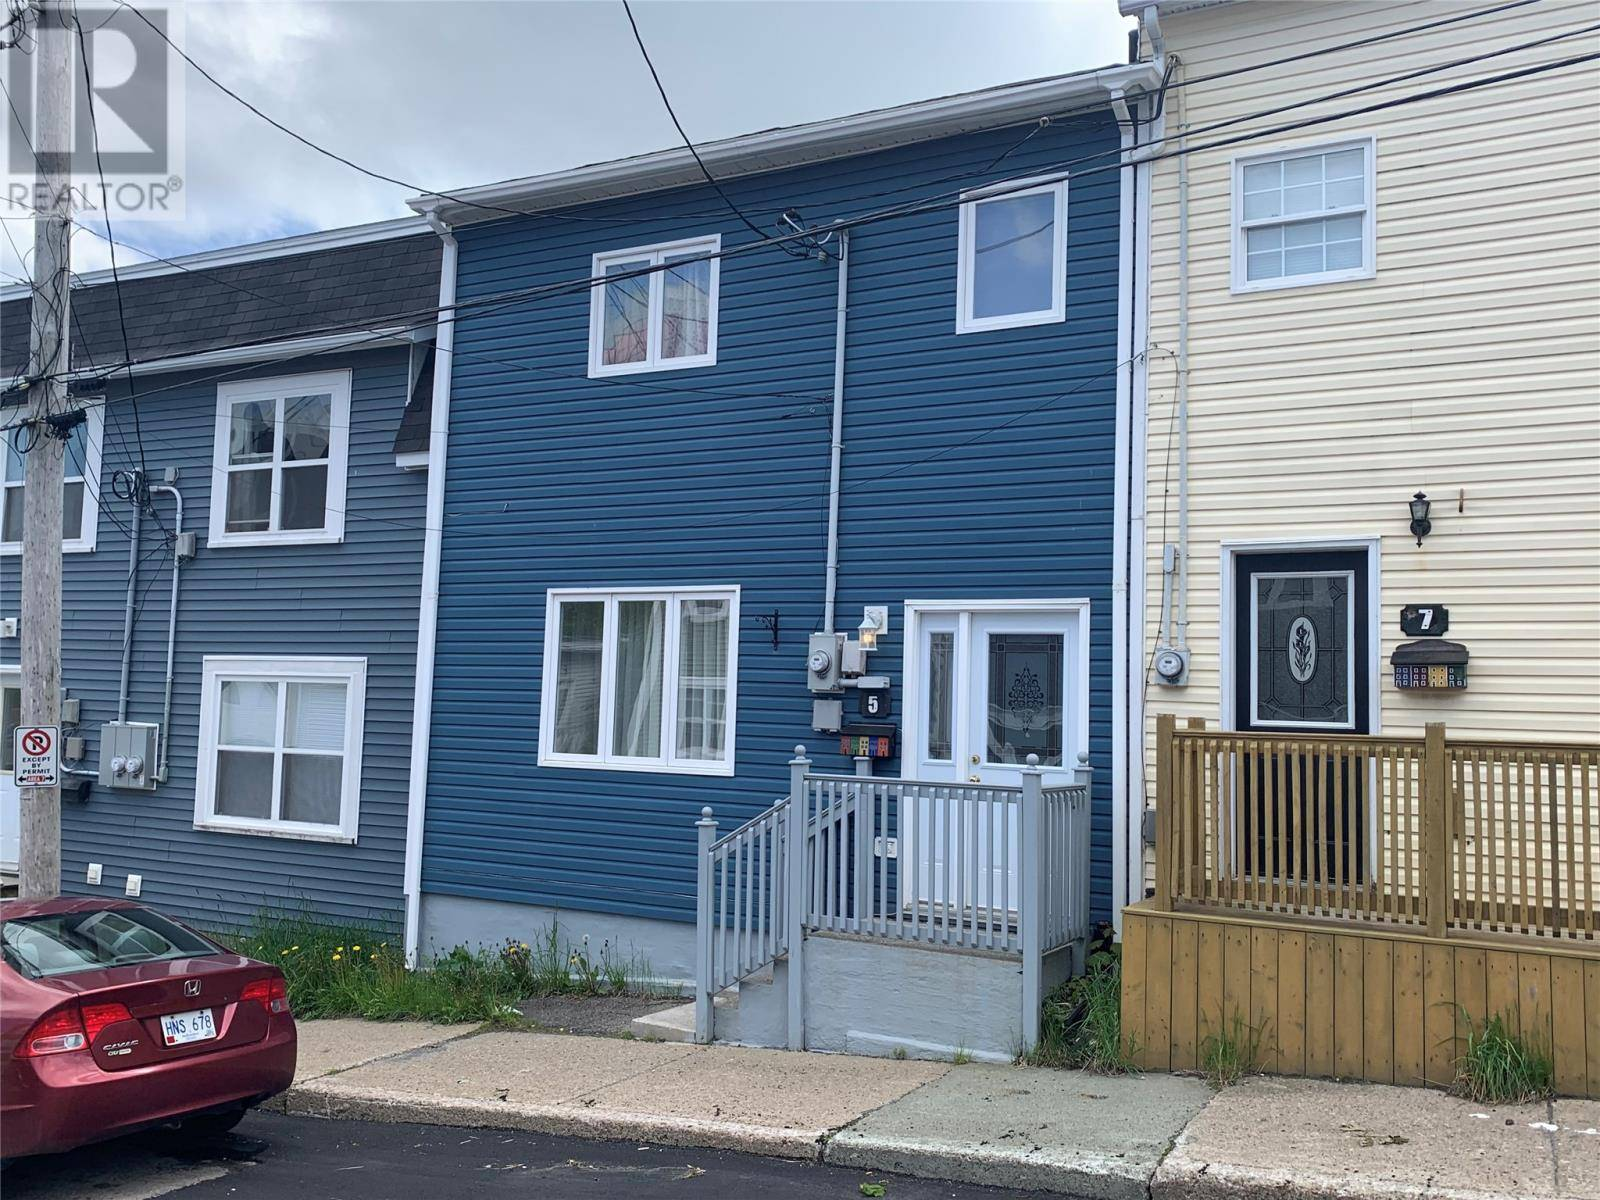 House for sale at 5 Mcfarlane St St. John's Newfoundland - MLS: 1211325